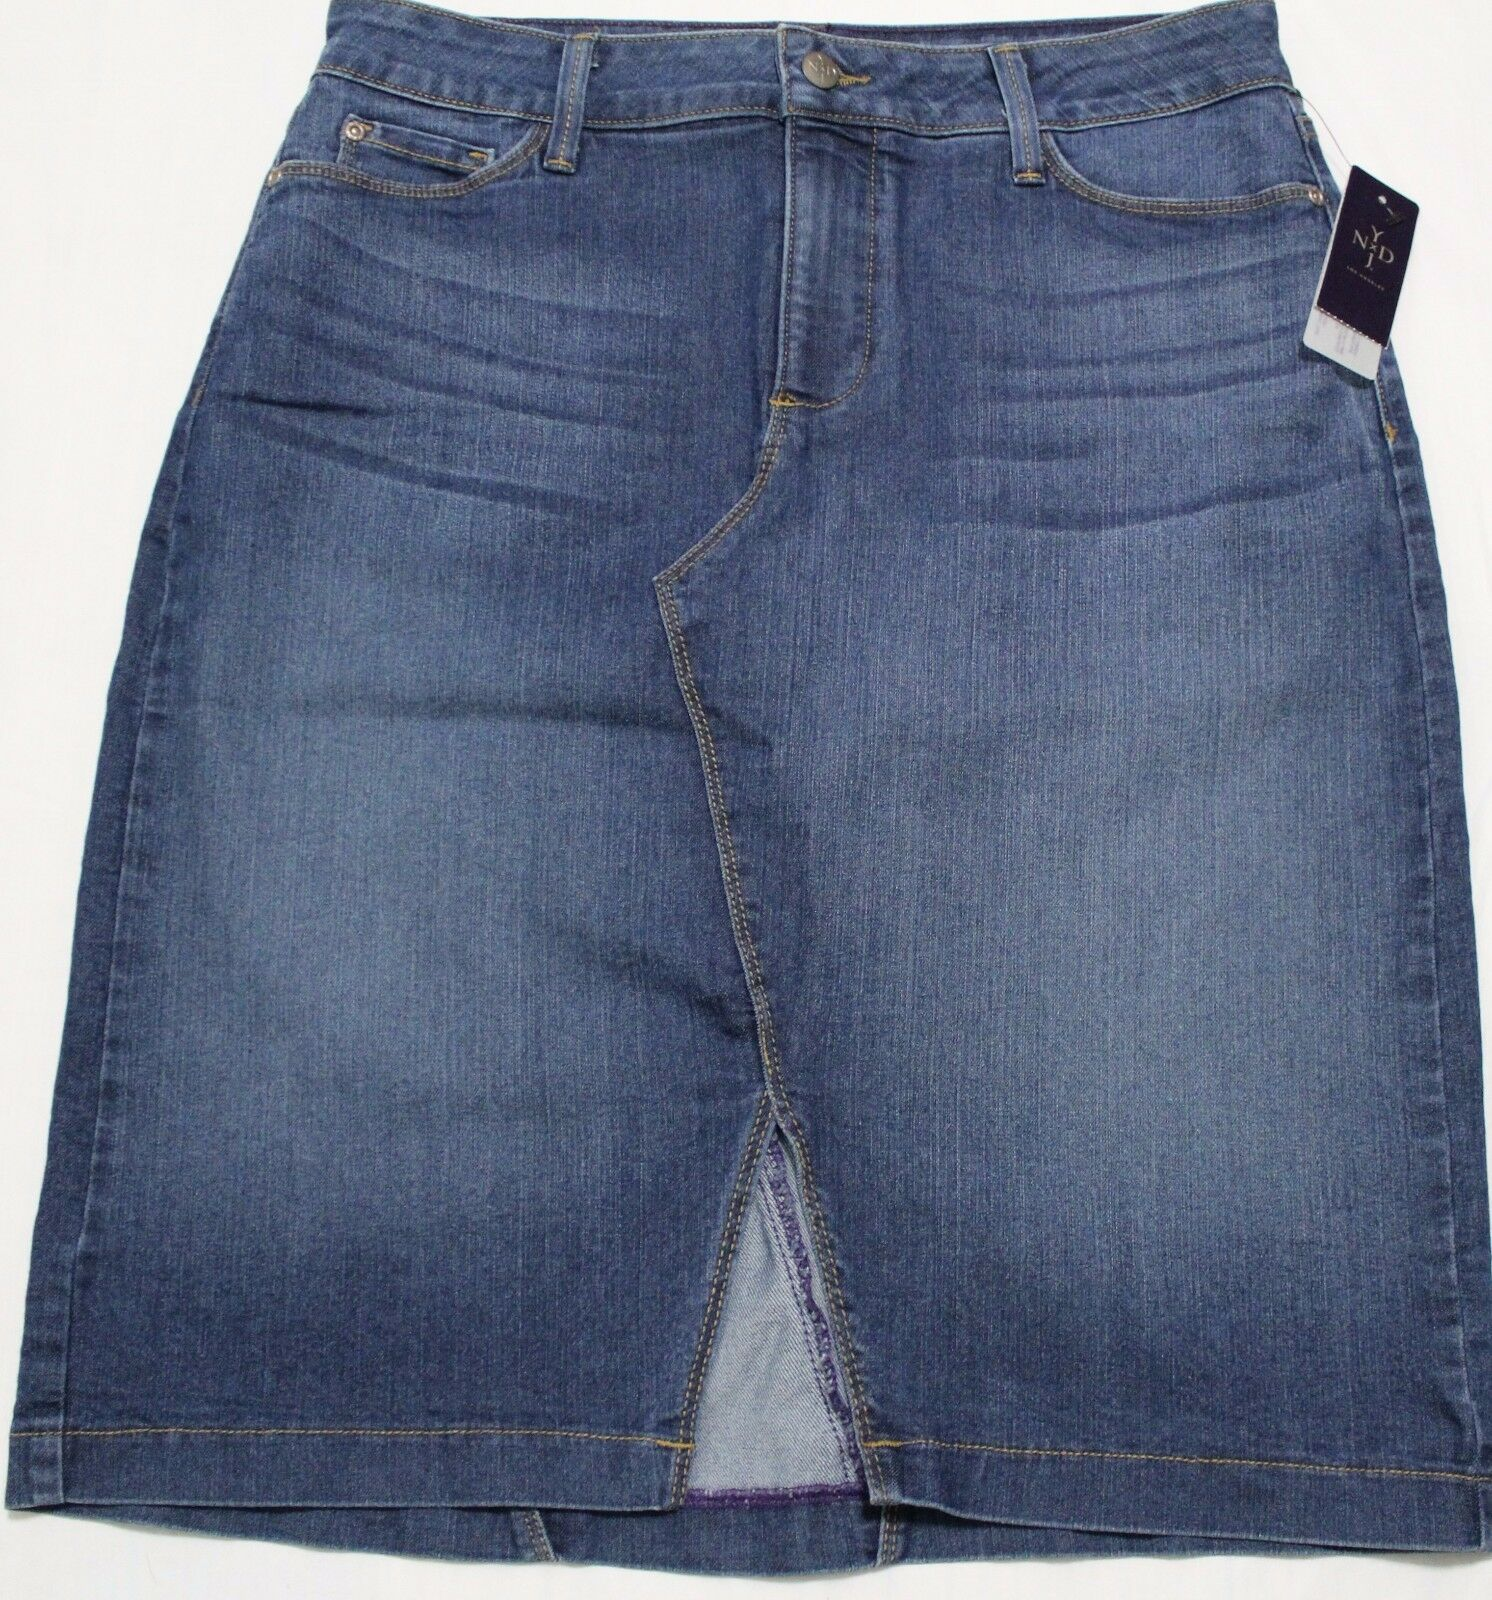 104 NYDJ NOT YOUR DAUGHTER'S JEANS ATLANTA DENIM SKIRT US 8